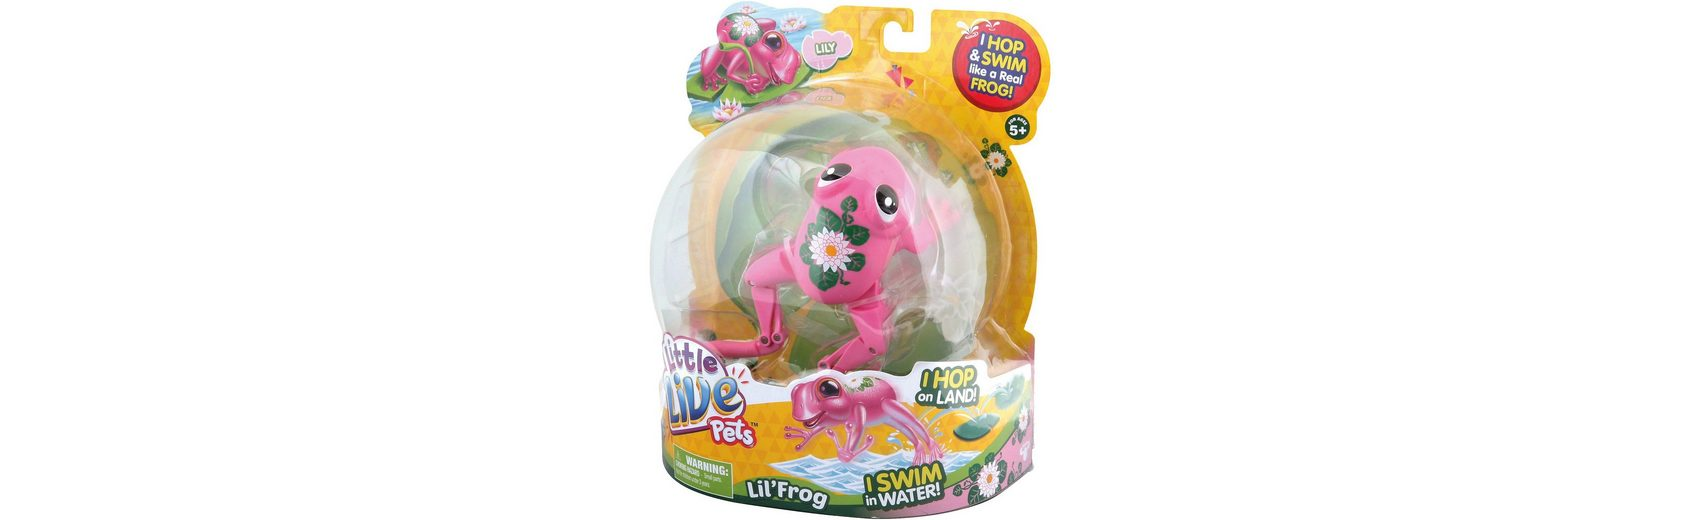 BOTI Little Live Pets 33927, Frosch Lily